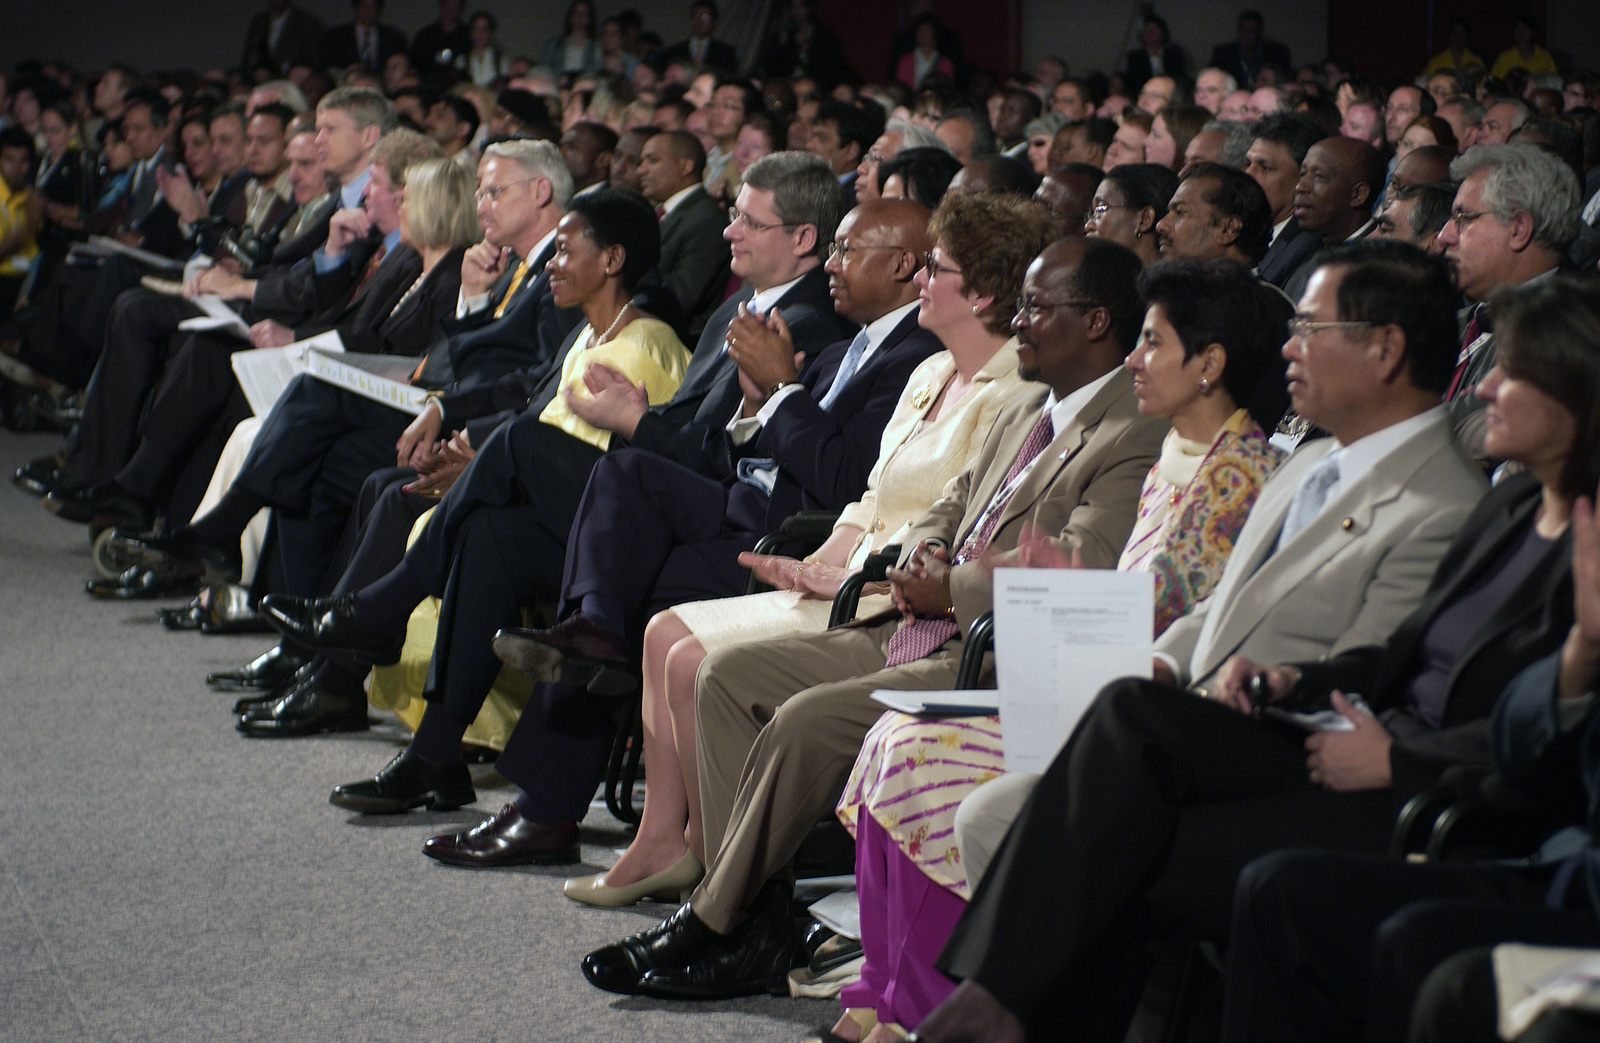 World Urban Forum in Vancouver, Canada,  attended by Secretary Alphonso Jackson